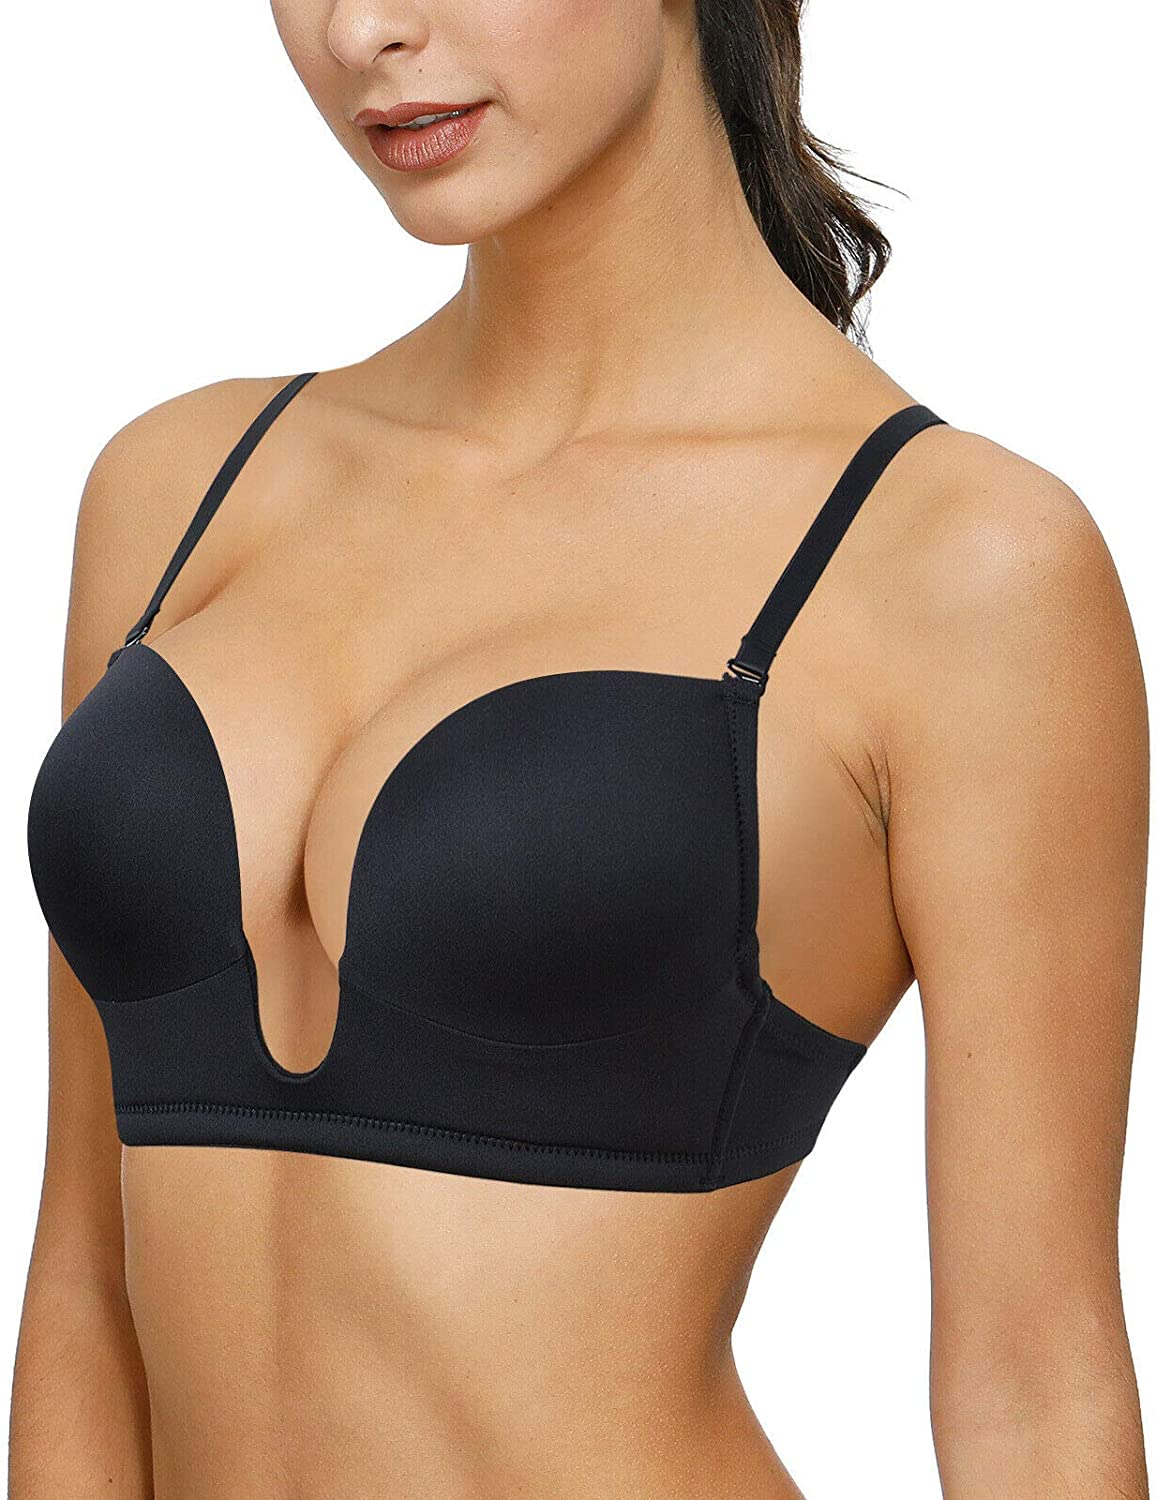 Womens Push Up Plunge U Shape Padded Low Back Clear Strap Multiway Convertible Bra